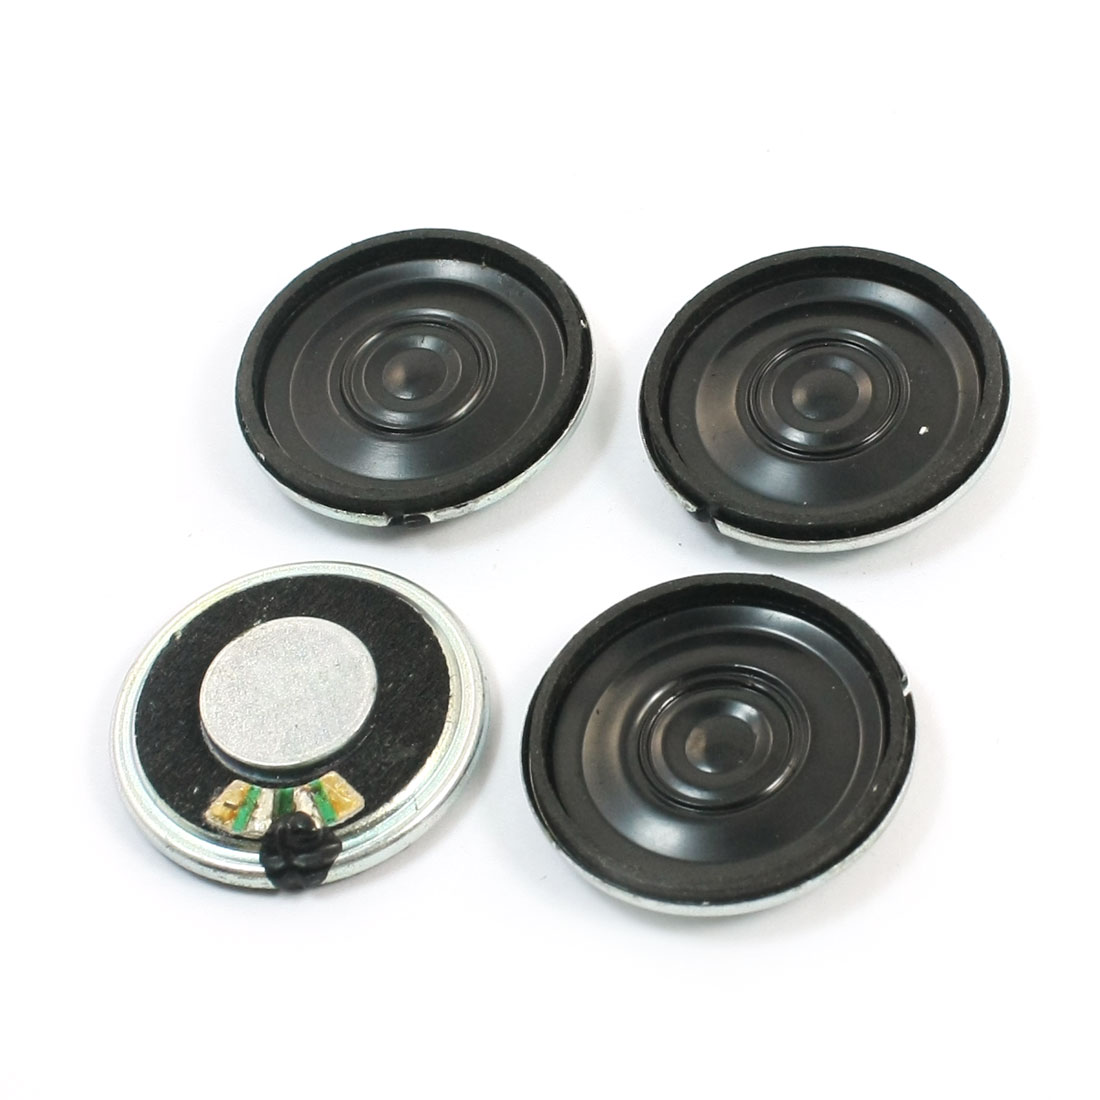 0.5W 4 Ohm 28mm Round Metal Shell Internal Magnetic Electronic Toy Audio Speaker Loudspeaker Amplifier 4Pcs